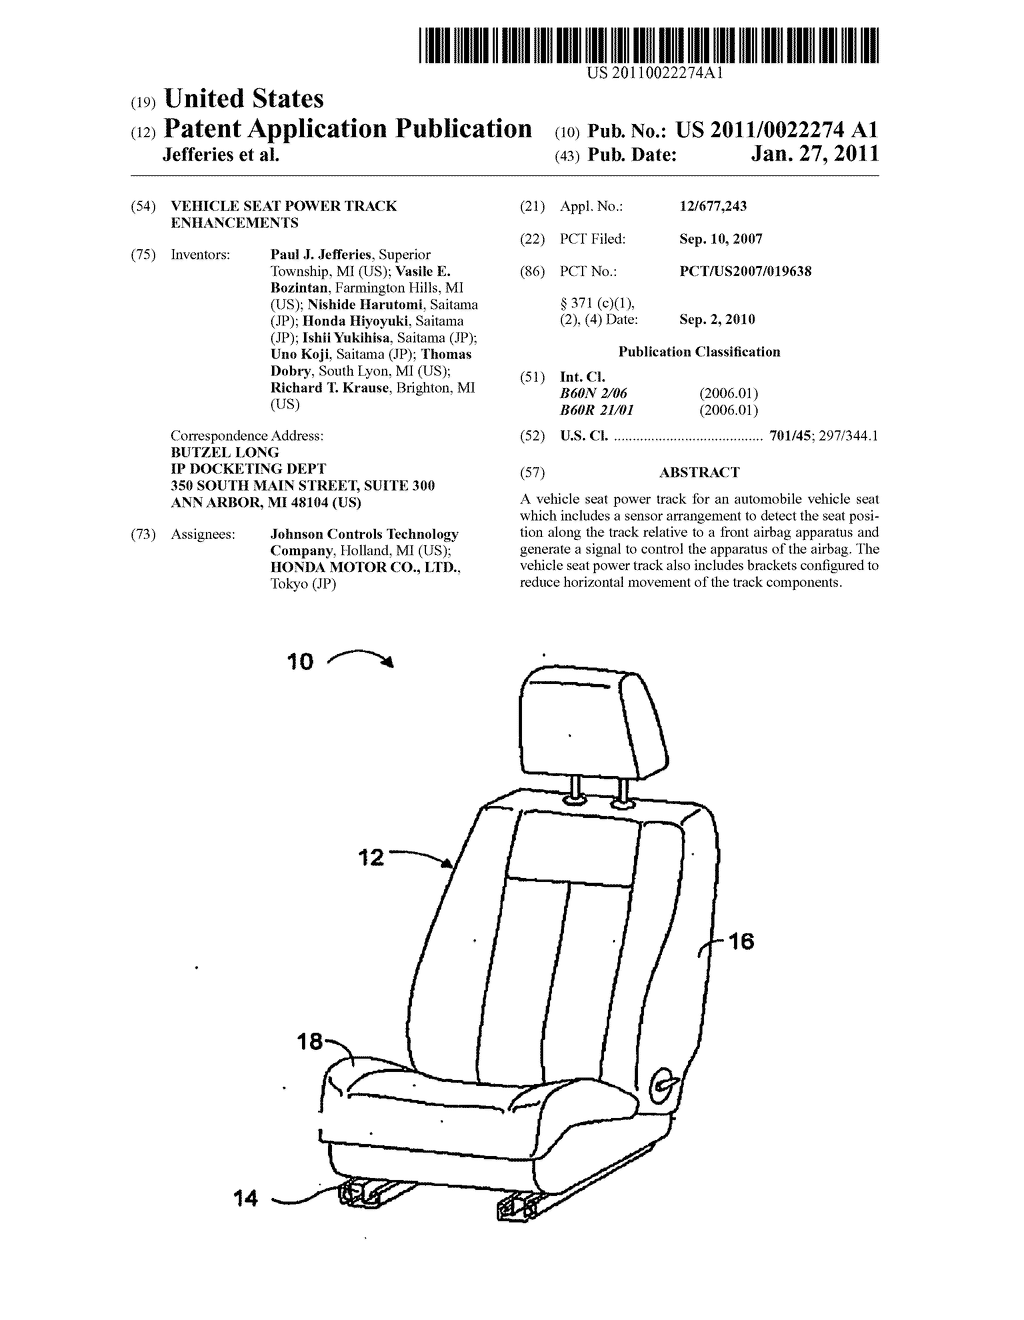 VEHICLE SEAT POWER TRACK ENHANCEMENTS - diagram, schematic, and image 01